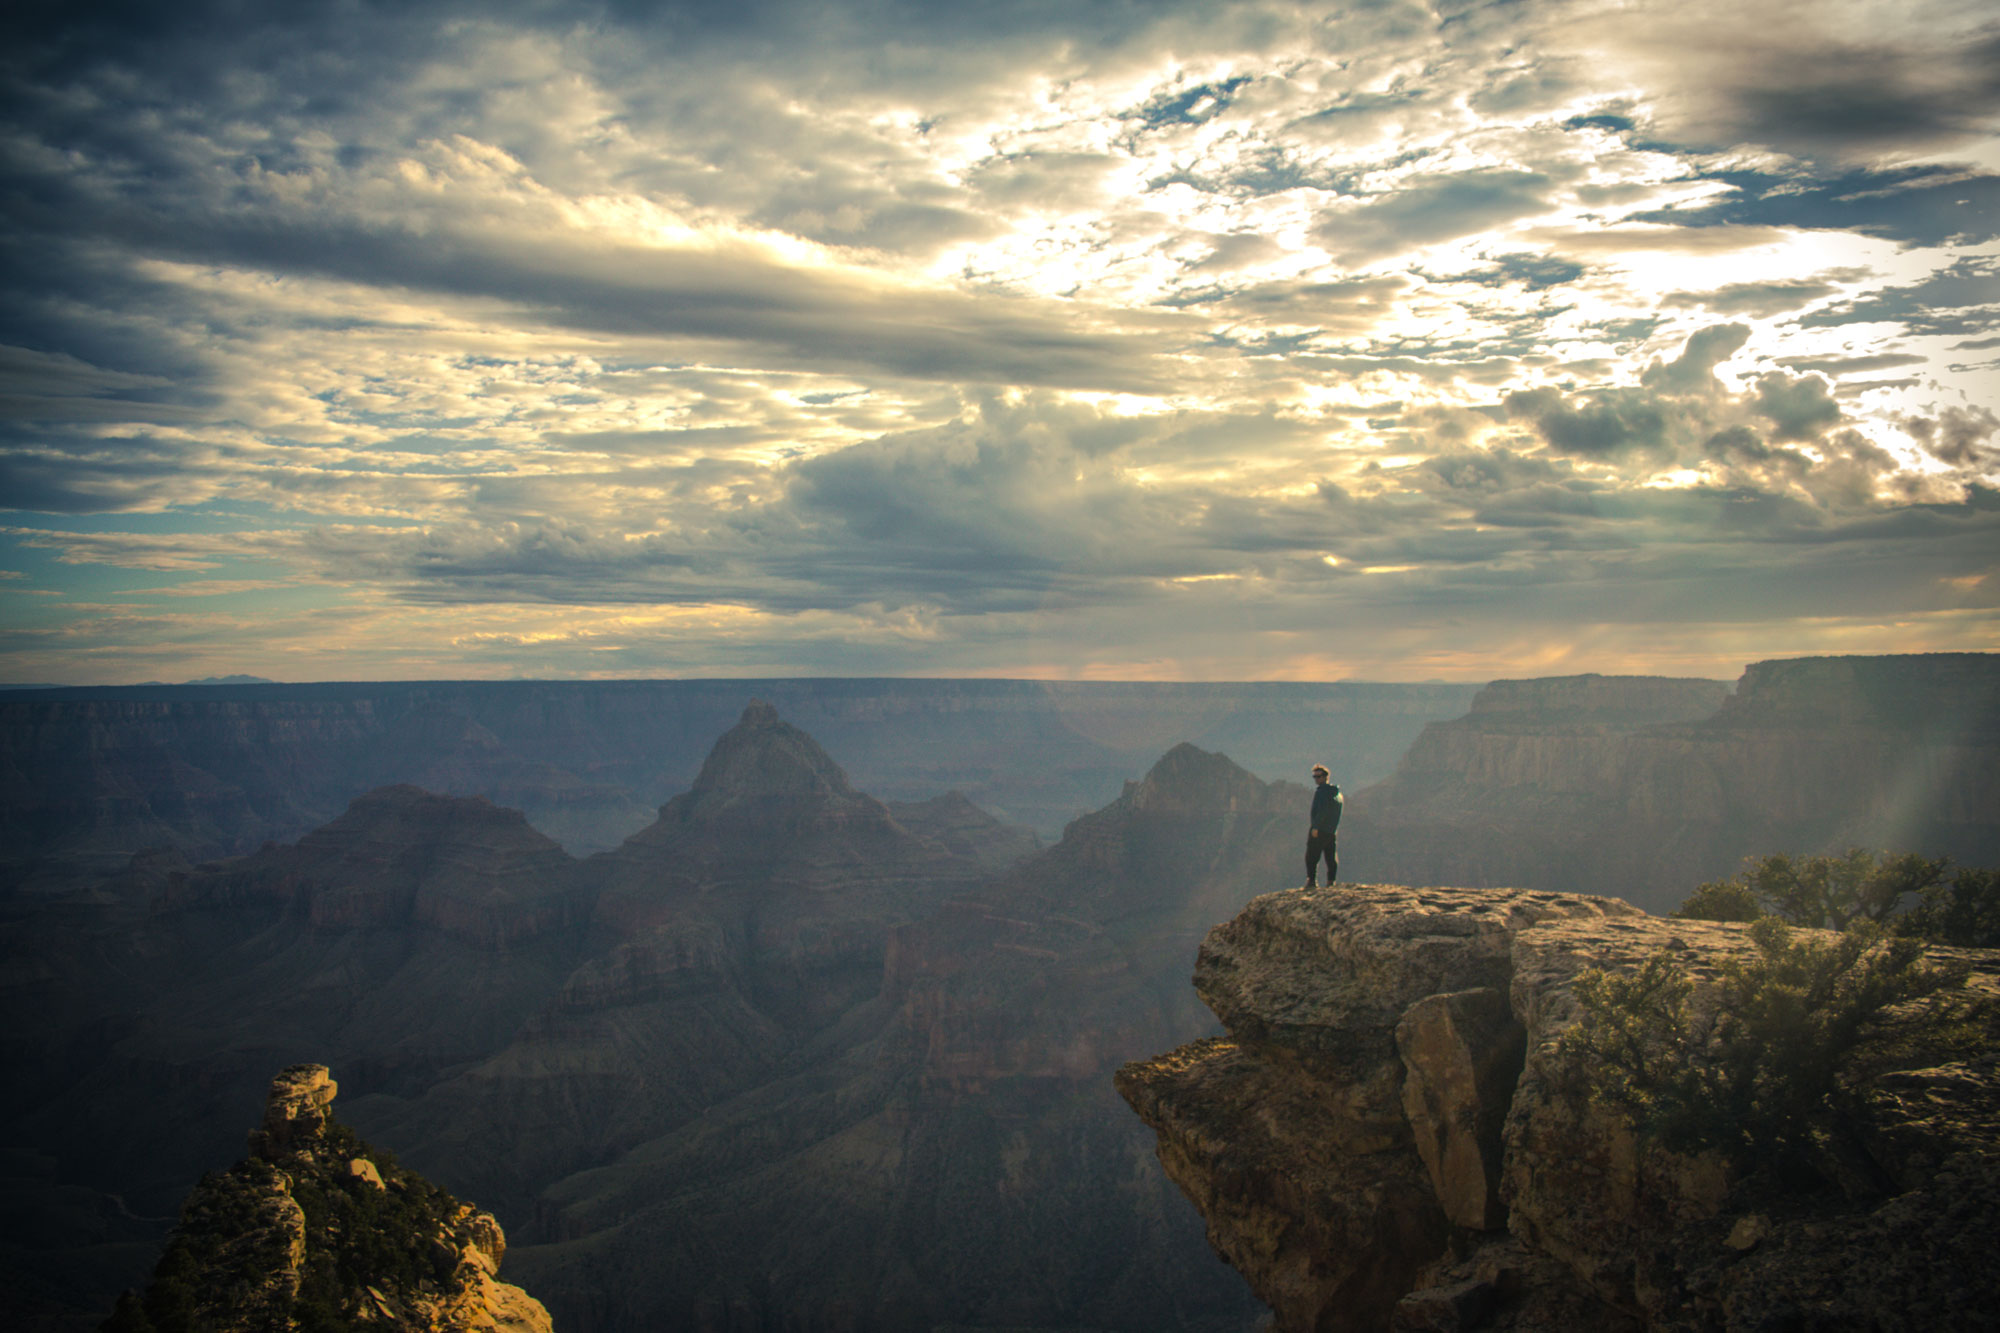 Cal peering over the Grand Canyon National Park